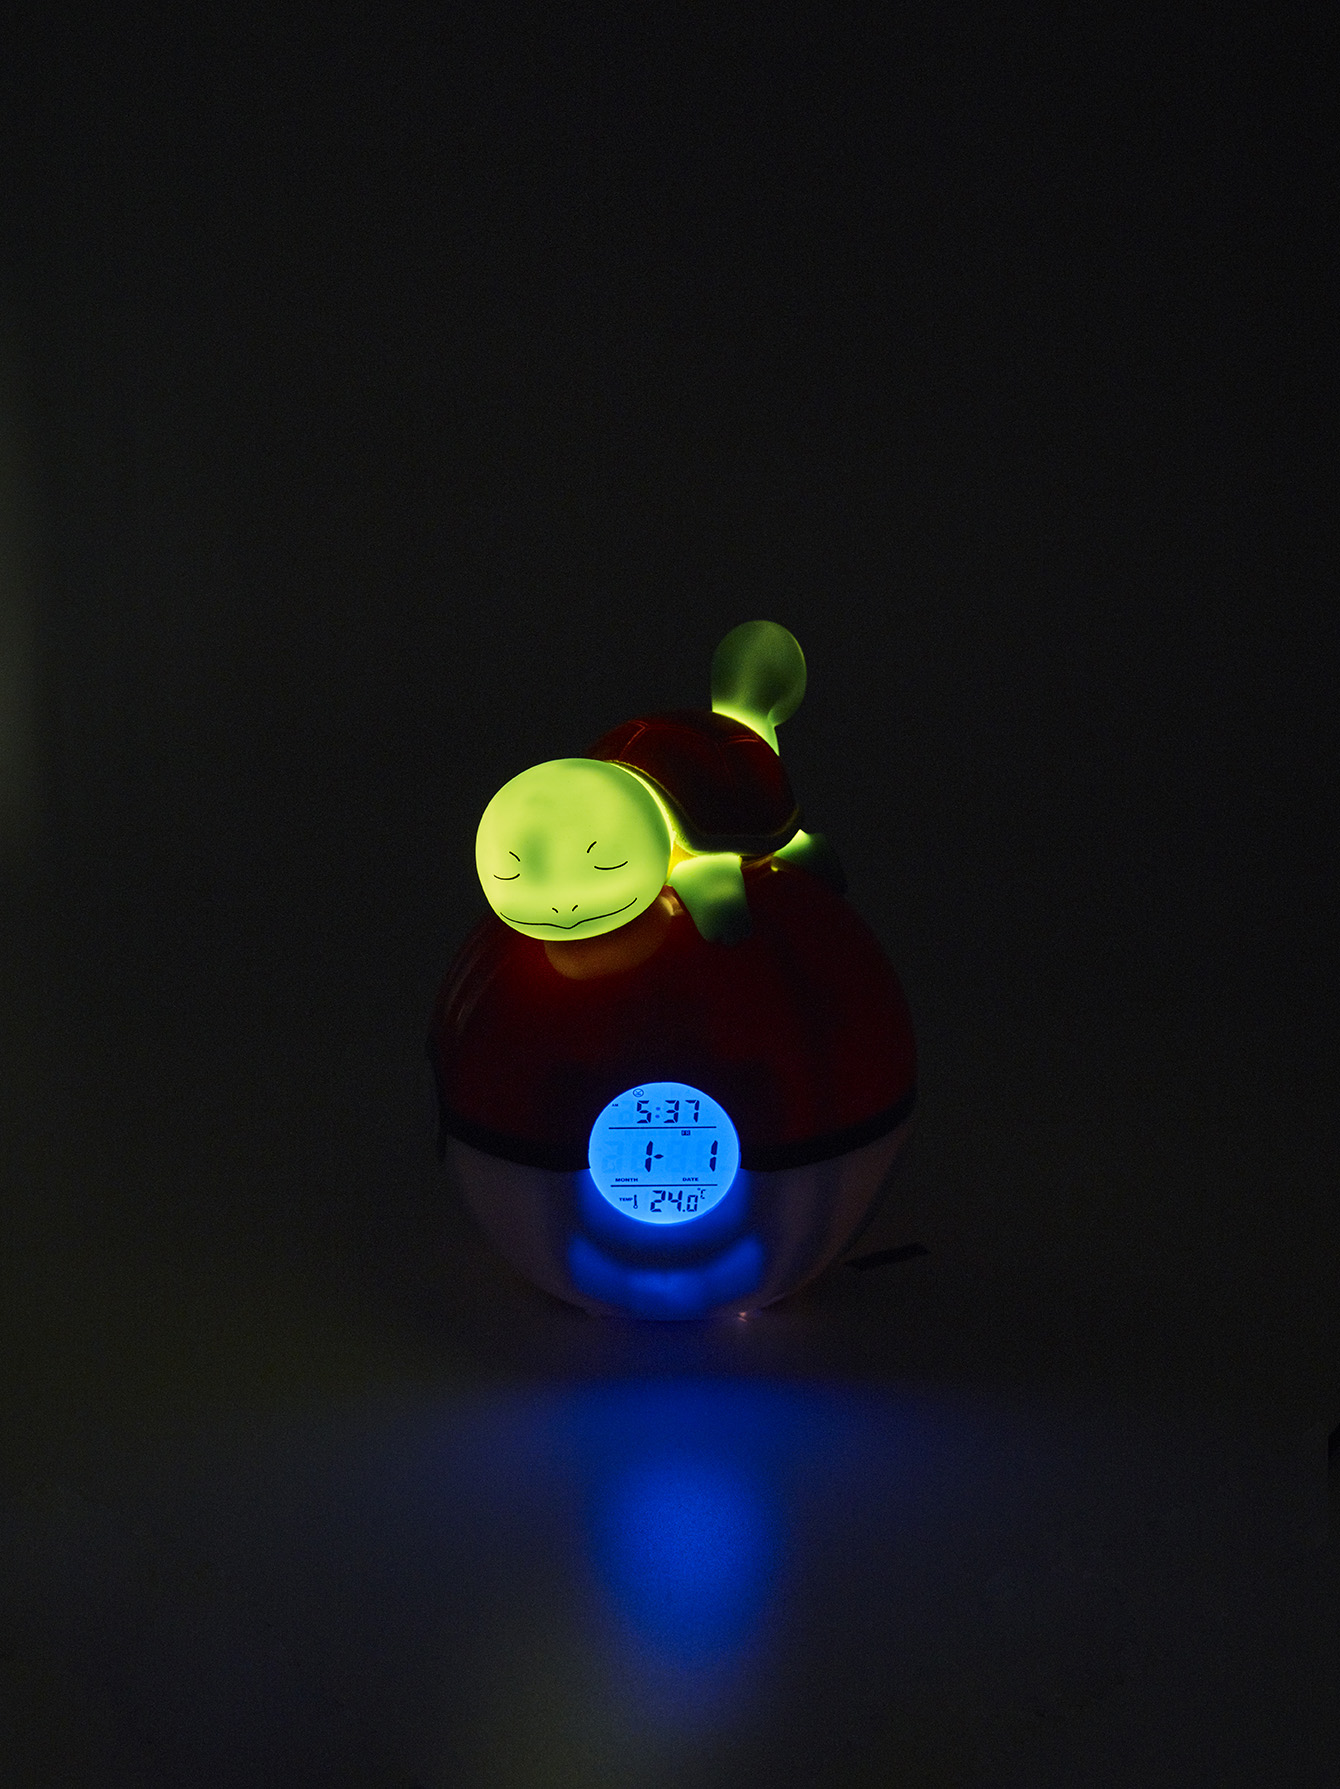 Pokémon Squirtle Light-up 3D figure FM Alarm Clock 5